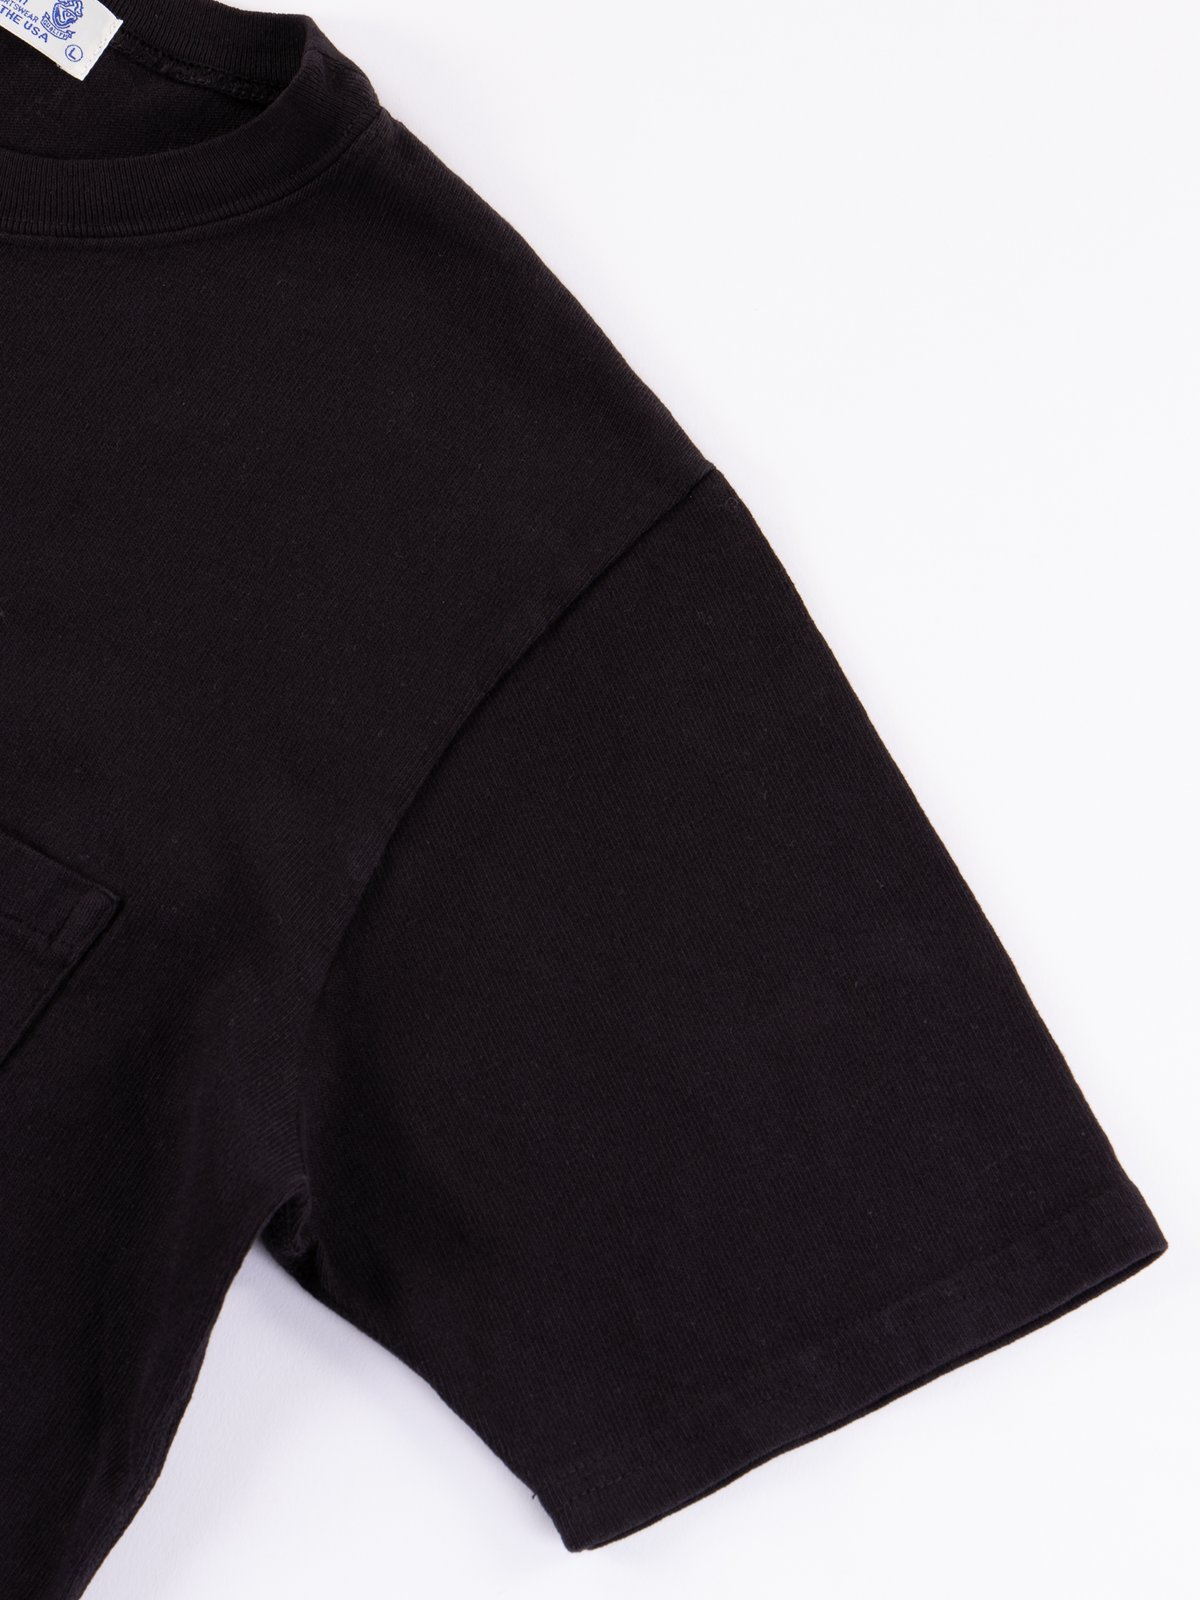 Black Heavy Oz Pocket Tee - Image 4